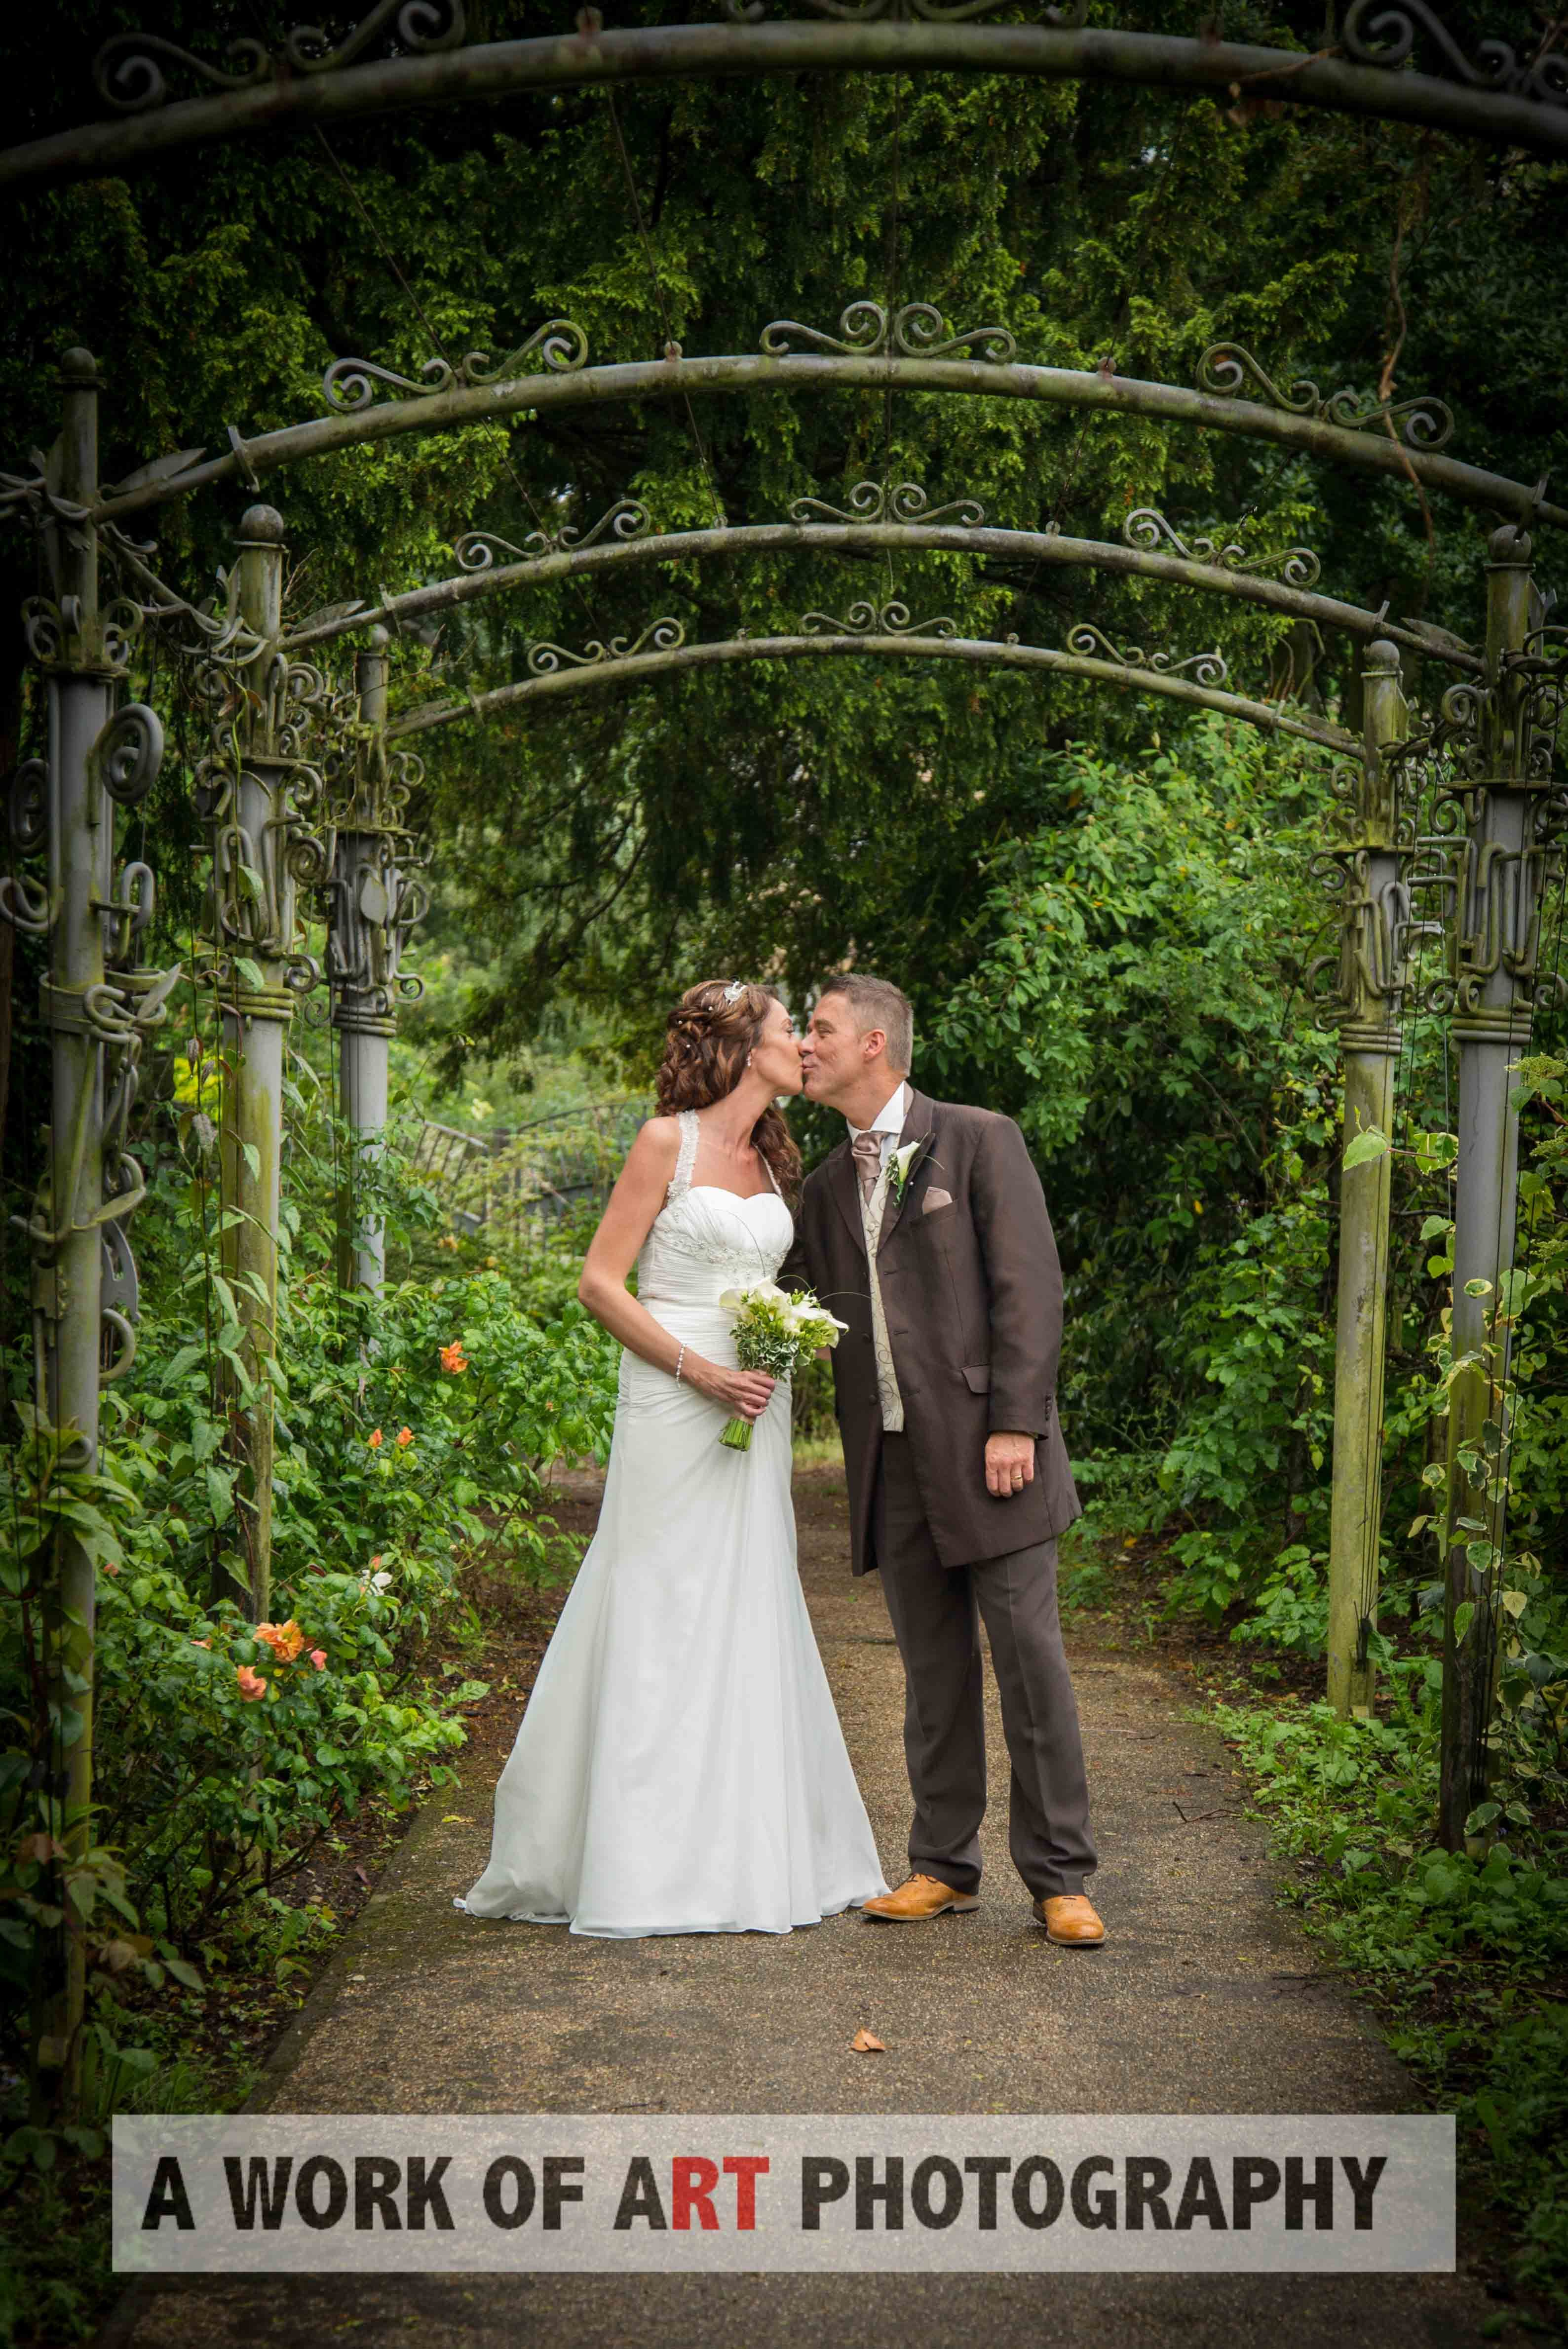 Wedding Photography by A Work of Art Photography at Mansfield Manor Hotel, Carr Bank Park